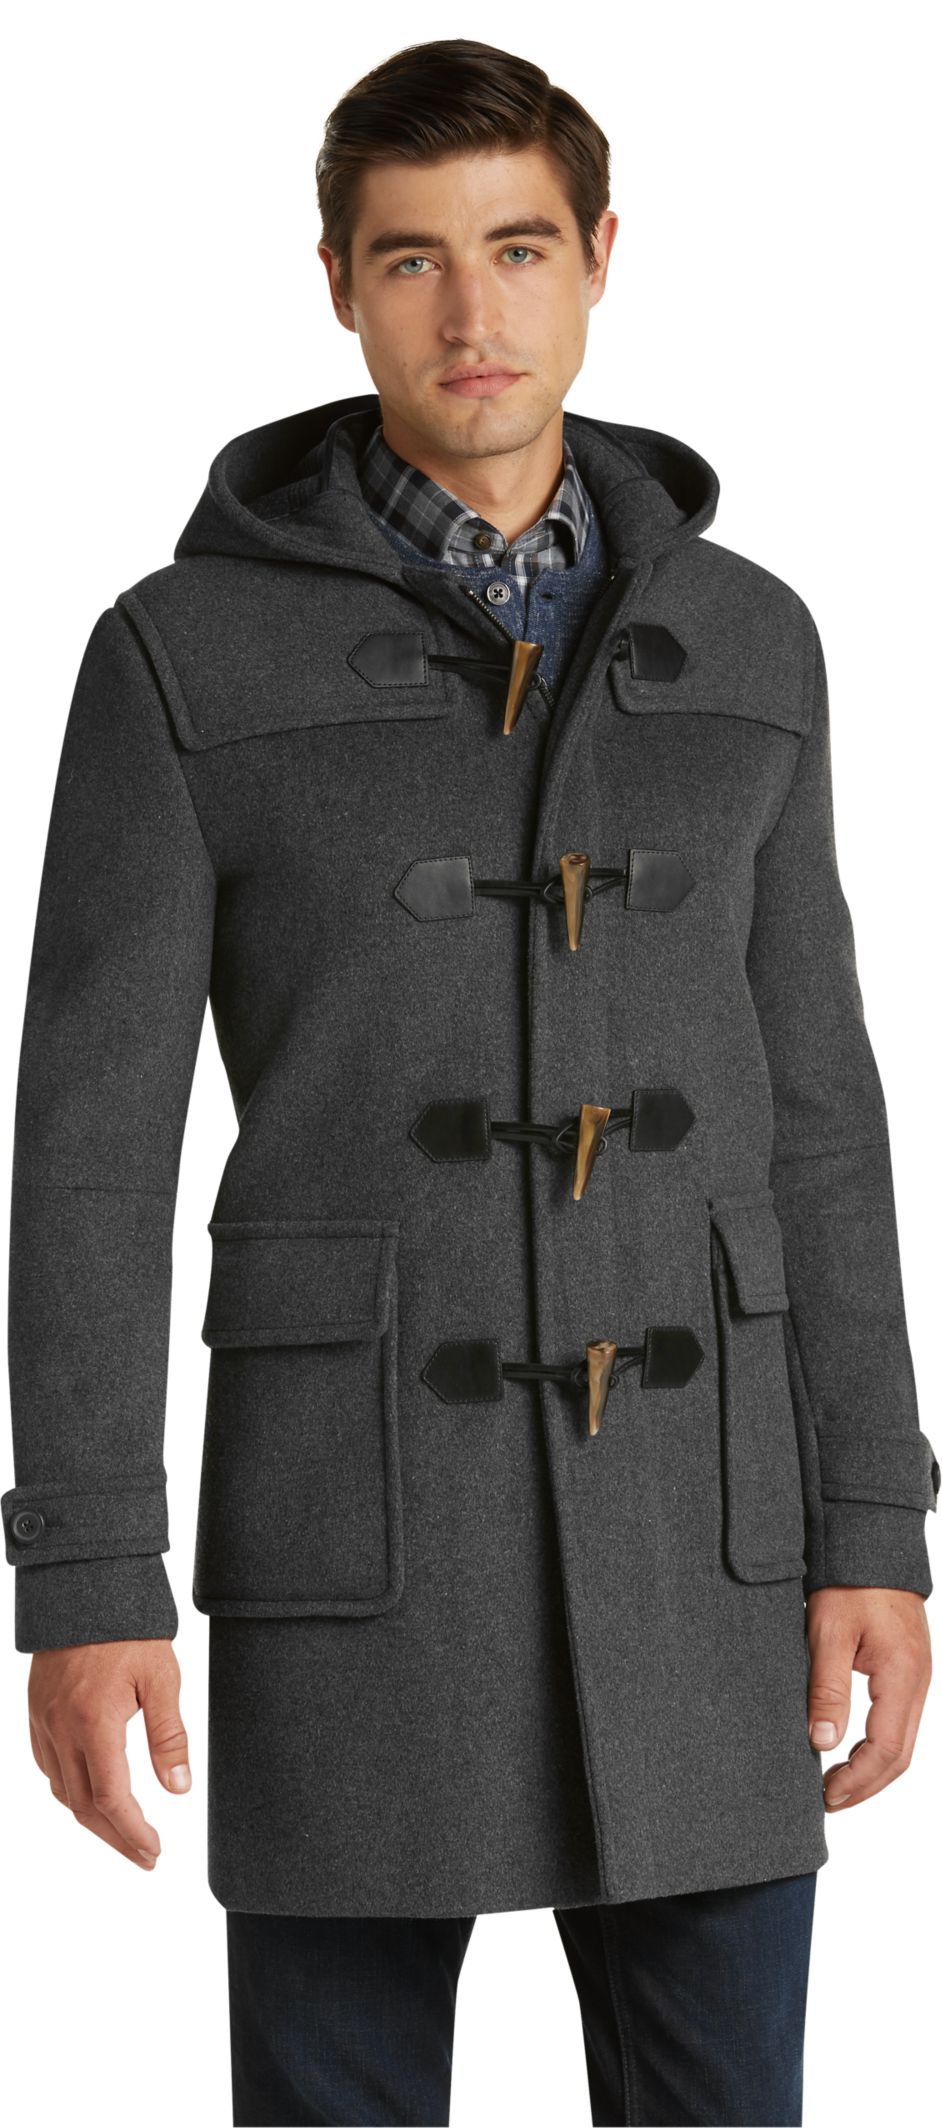 1905 Collection Tailored Fit 3/4 Length Duffle Coat - Big & Tall ...